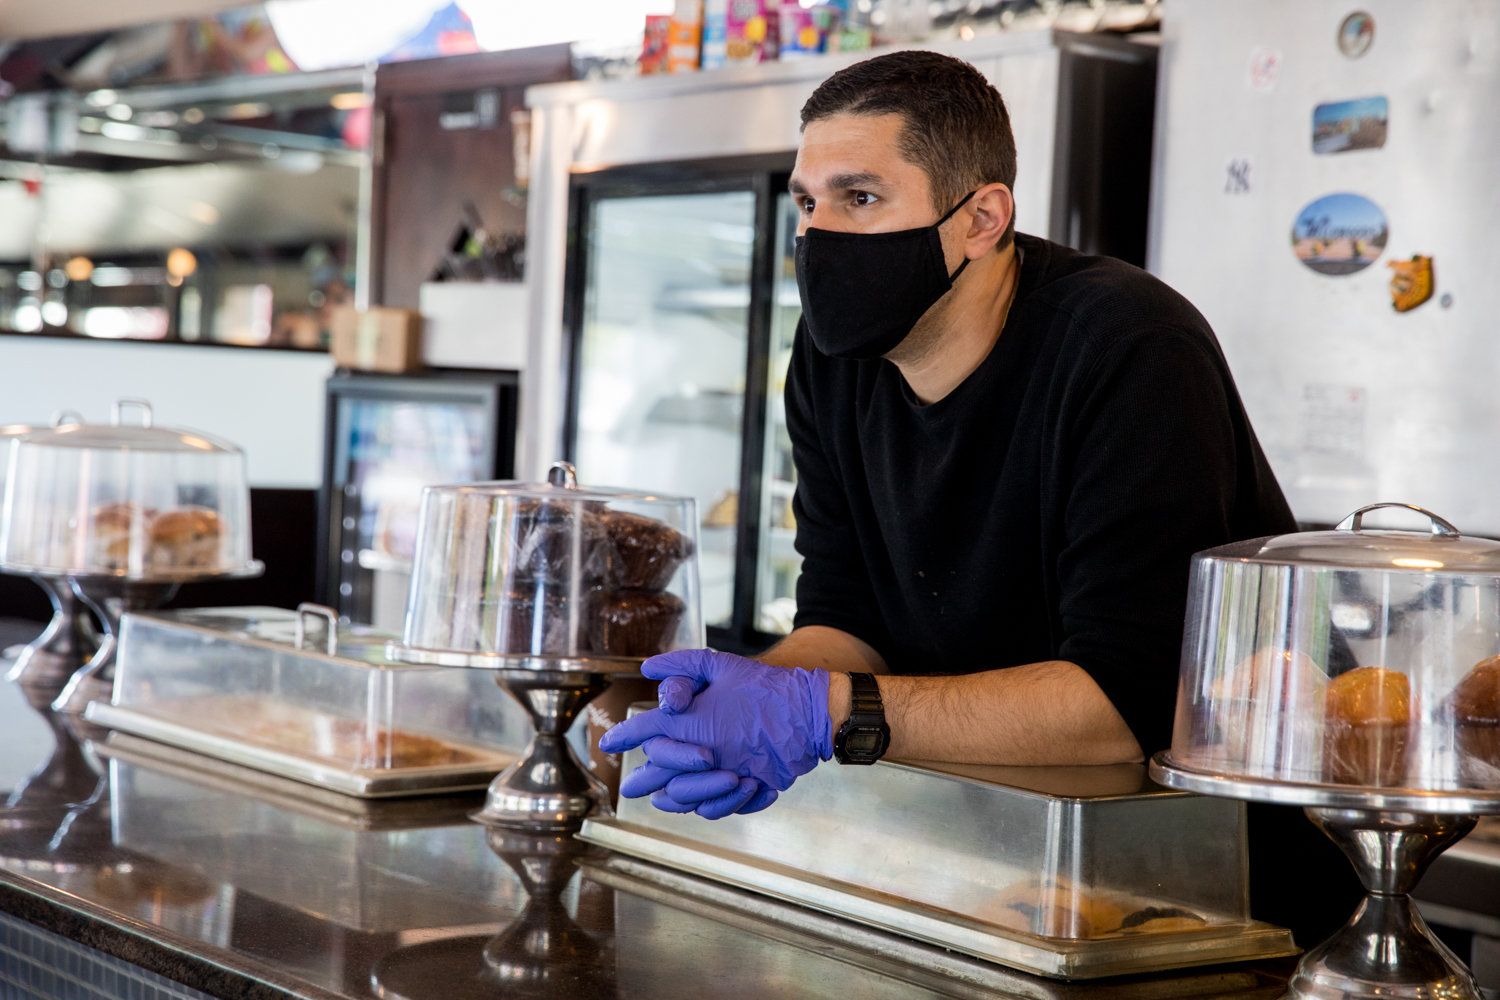 Nick Diakakis looks out from behind the counter at Tibbett Diner, which has been struggling in the face of the coronavirus pandemic. While it has reopened for takeout and delivery, business is not what it used to be.